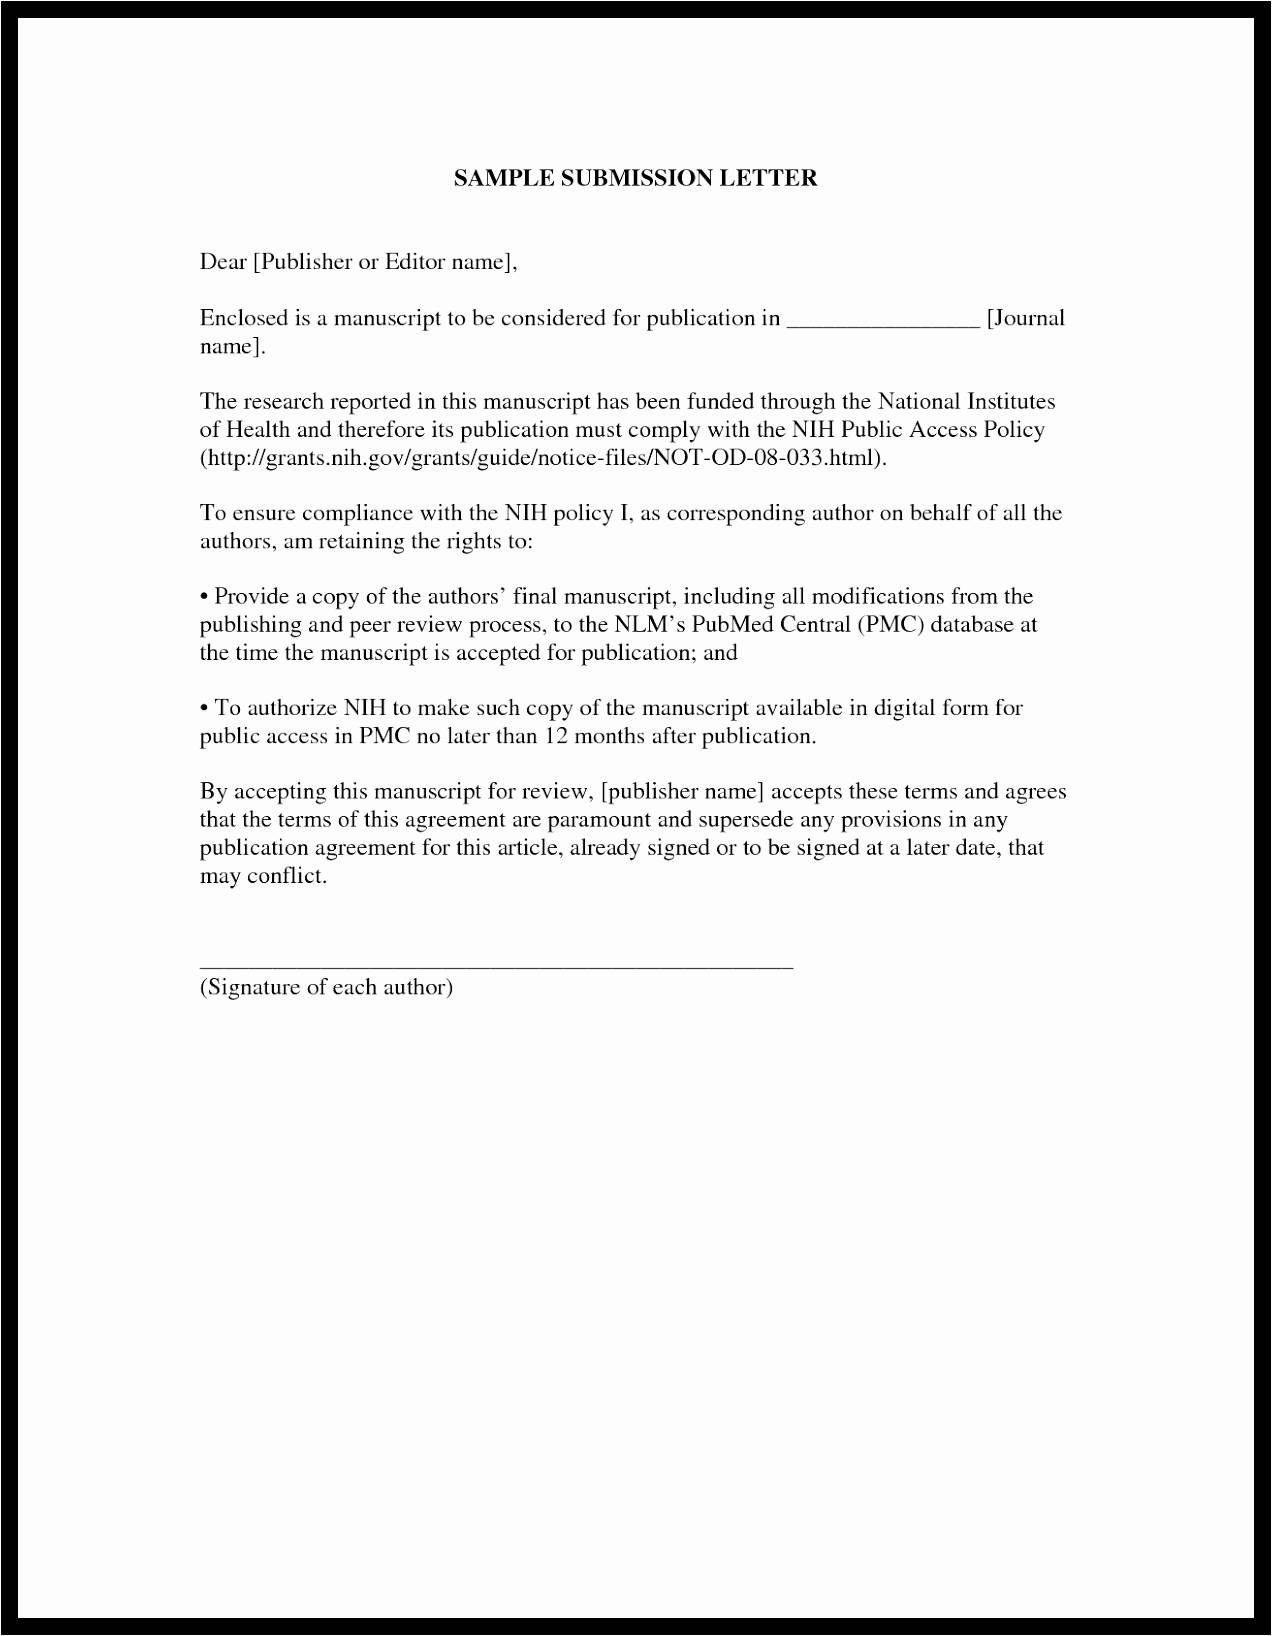 Contract Termination Letter Template - Affirmative Action Policy Template Lovely Child Support Agreement